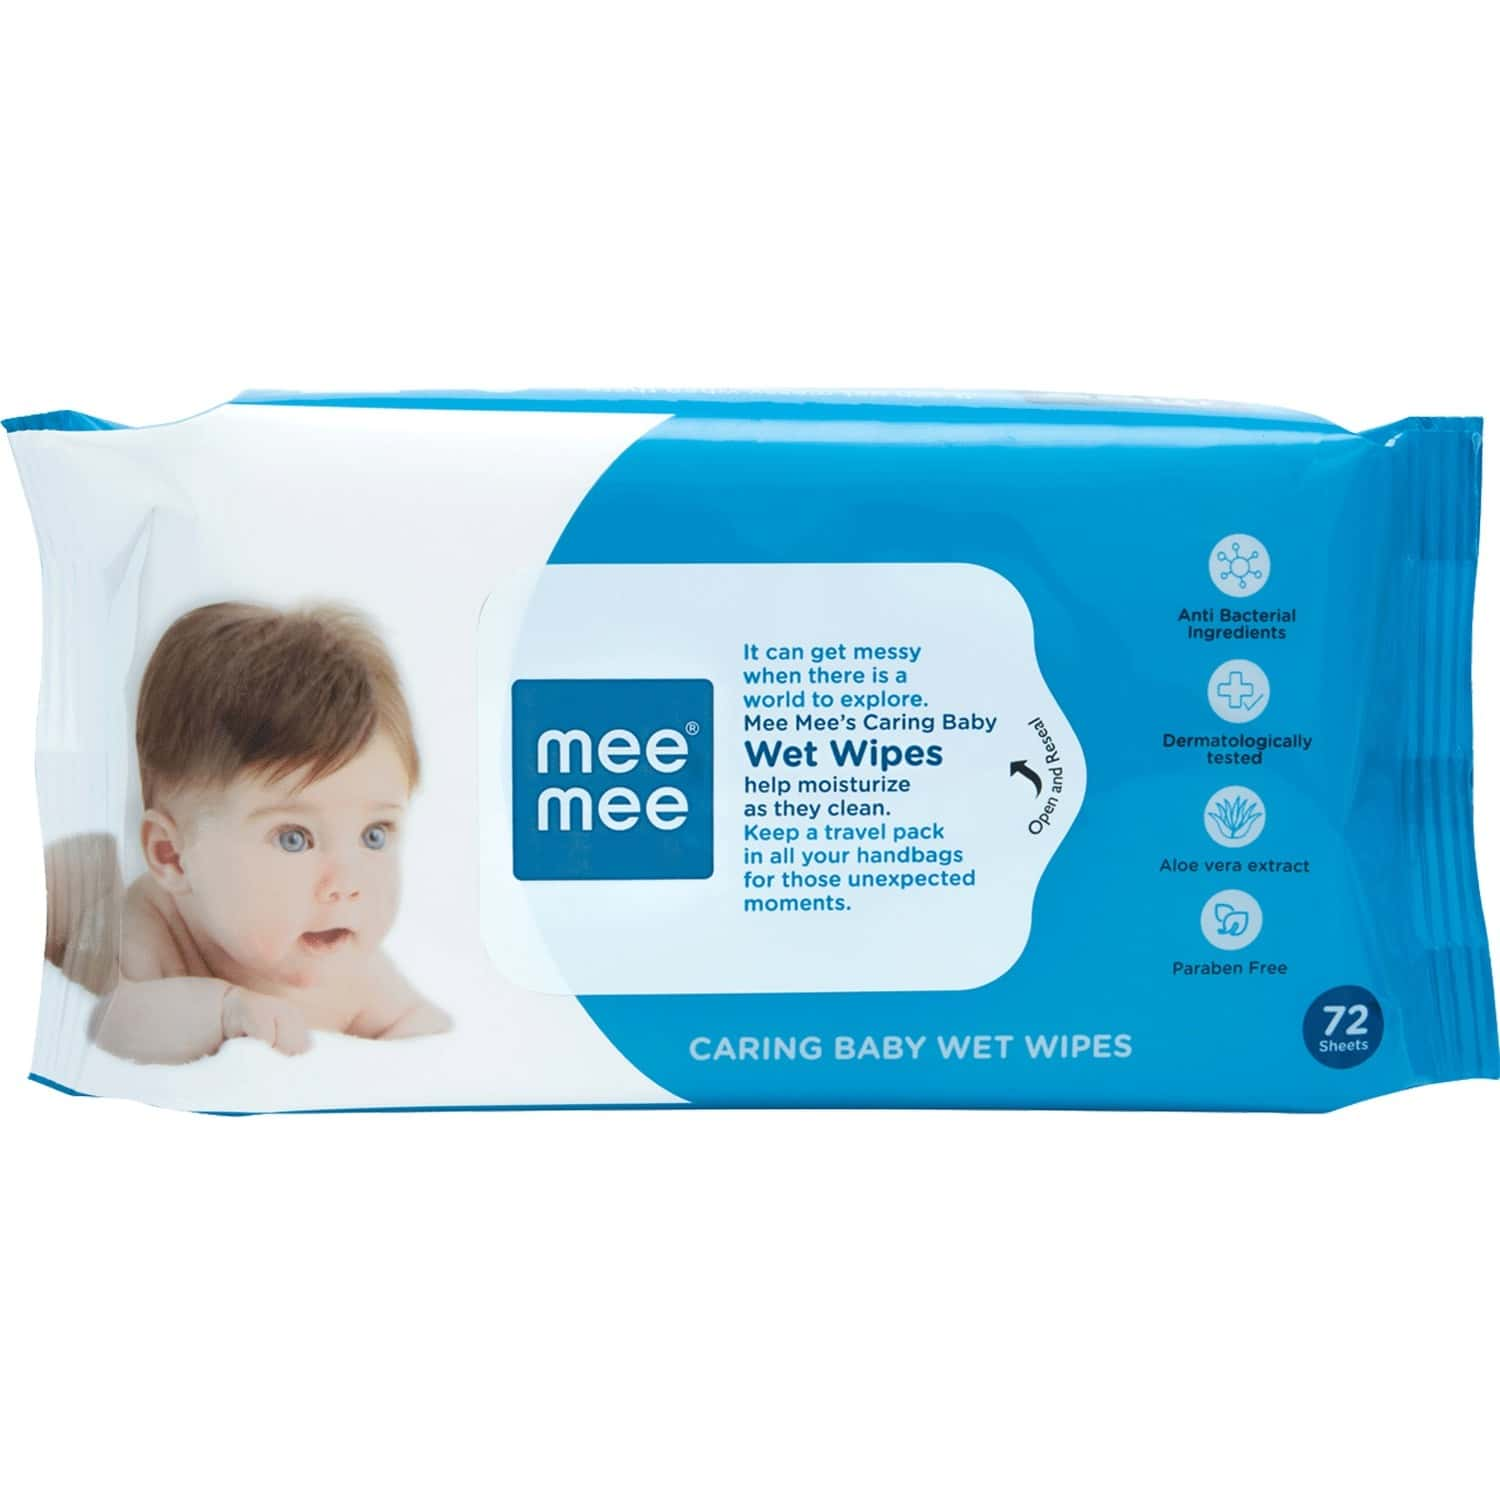 Mee Mee Caring Baby Wet Wipes With Aloe Vera - 72 Units